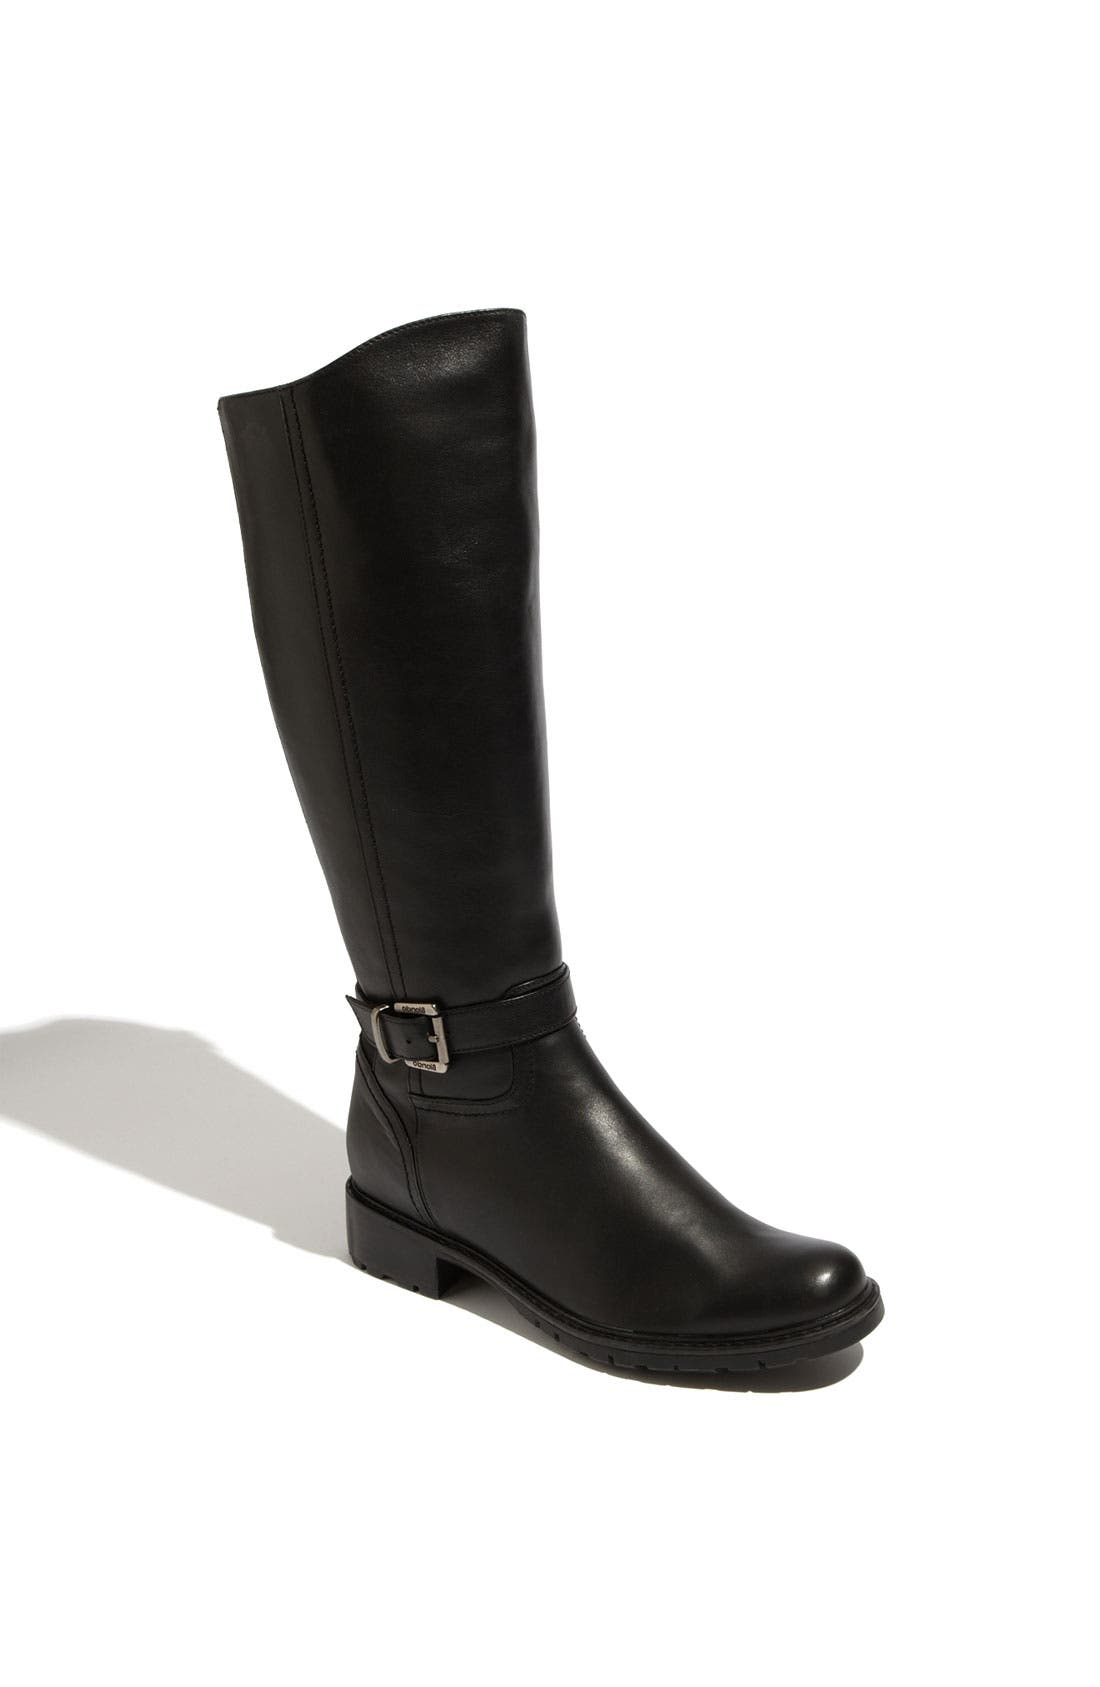 Main Image - Blondo 'Viviane' Waterproof Boot (Wide Calf)